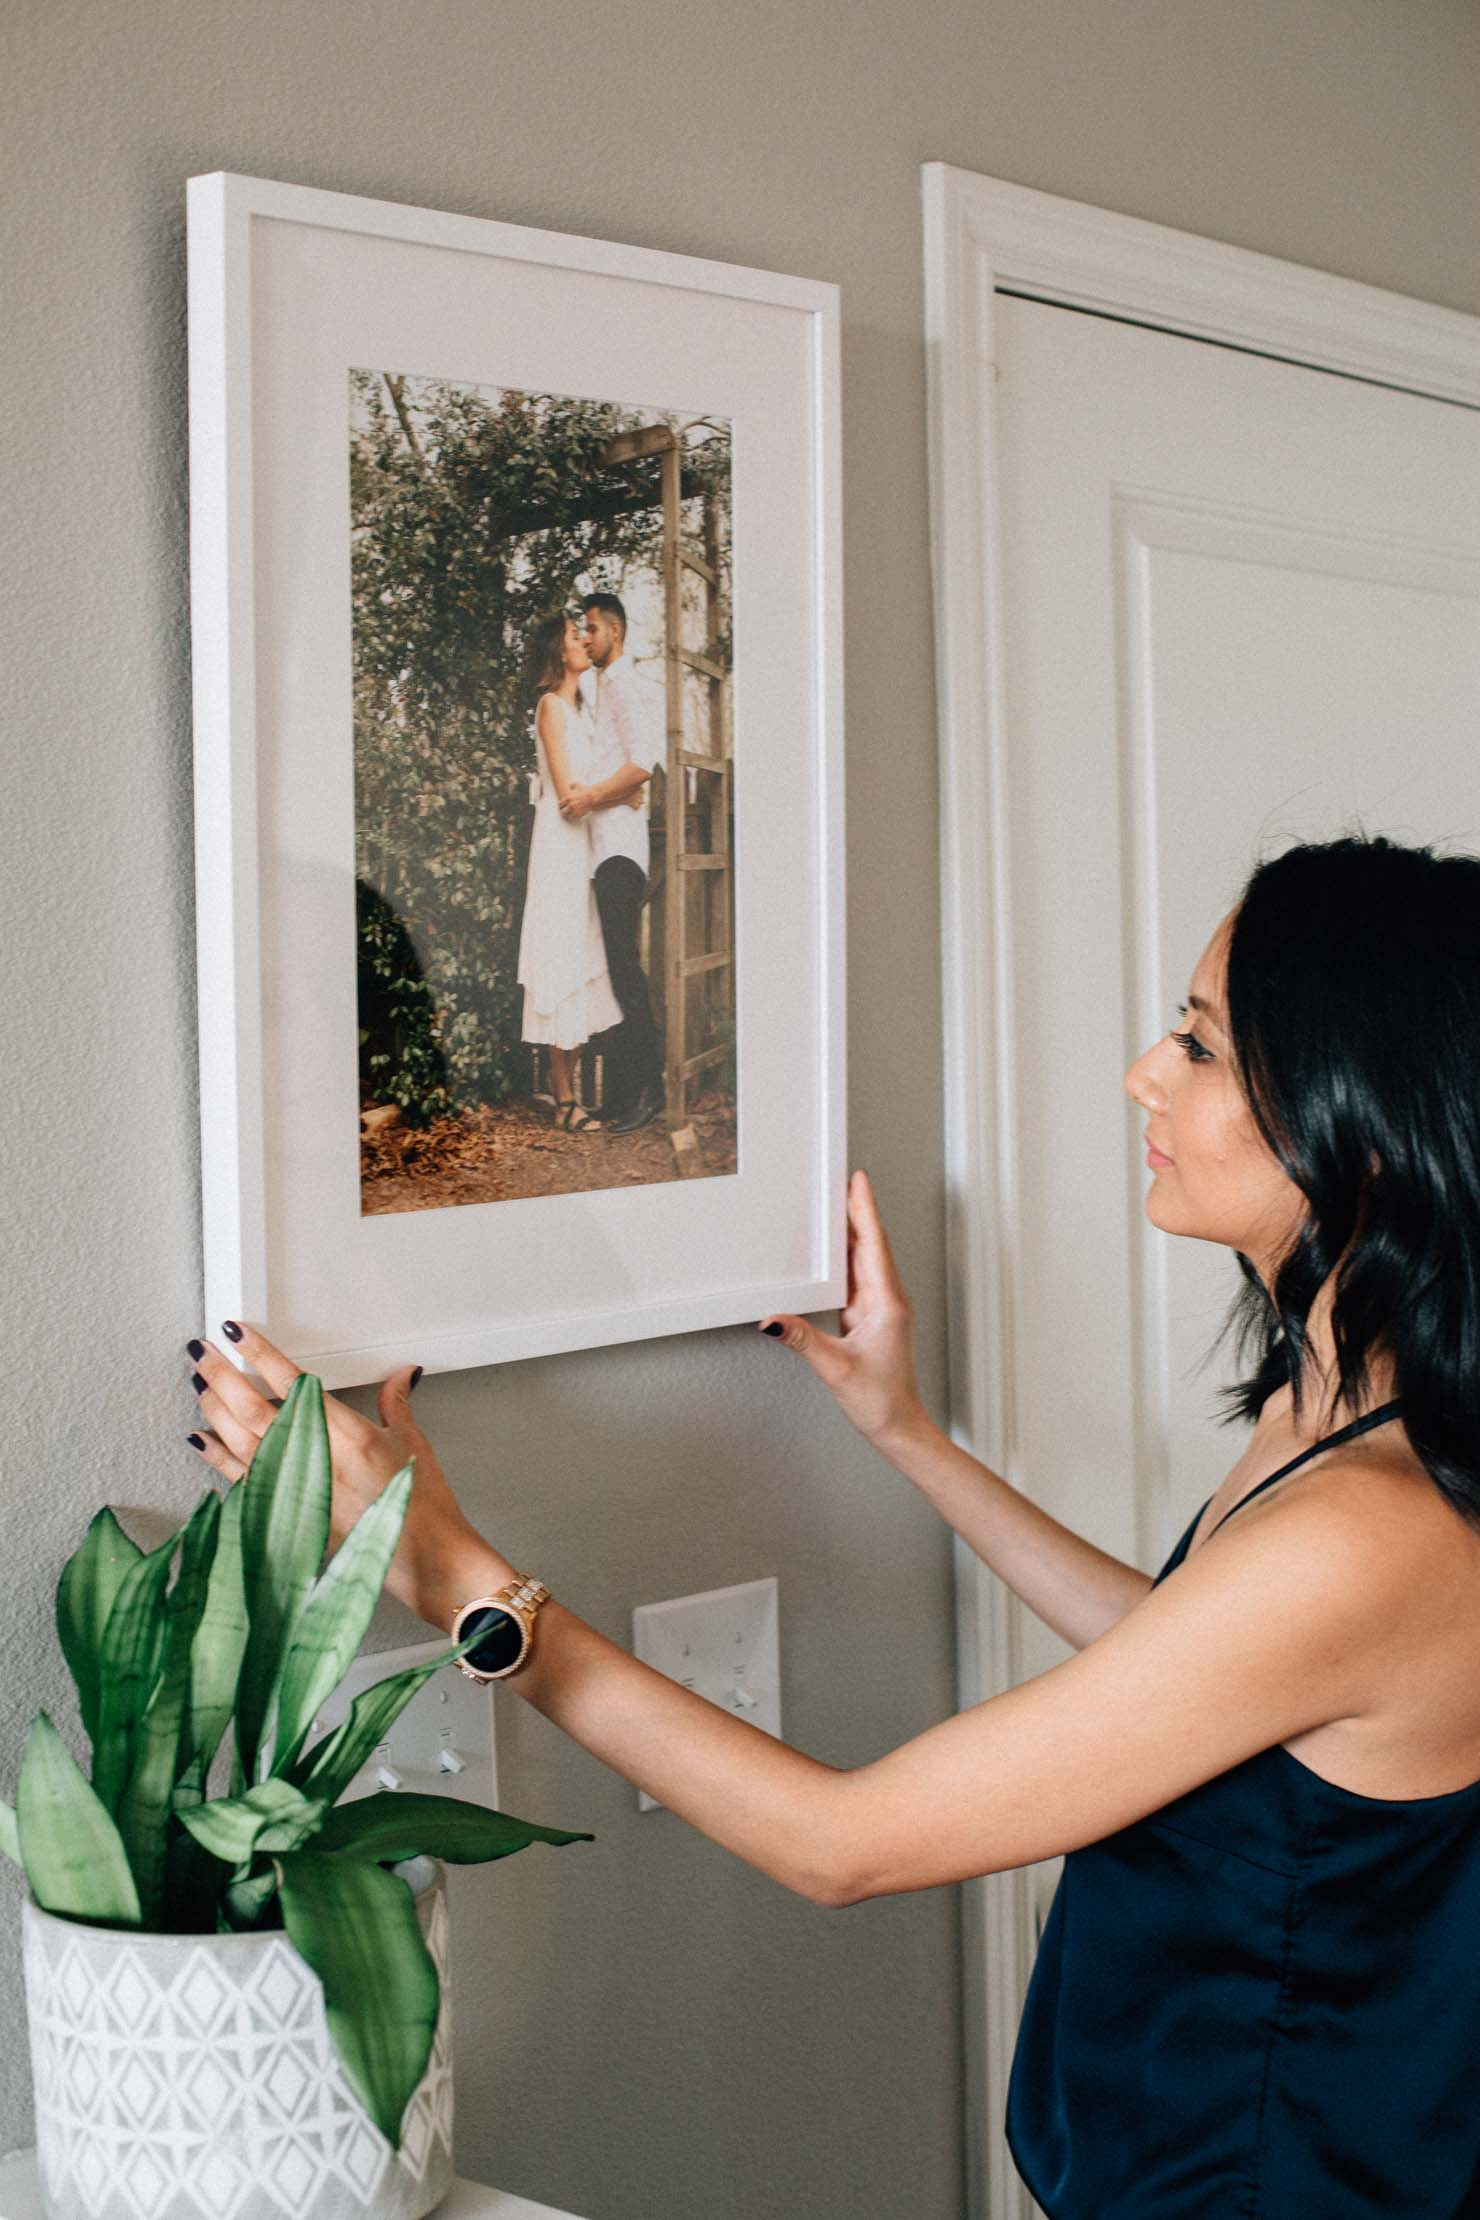 Lilly Beltran of Daily Craving blog celebrates 10 years of marriage with Framebridge